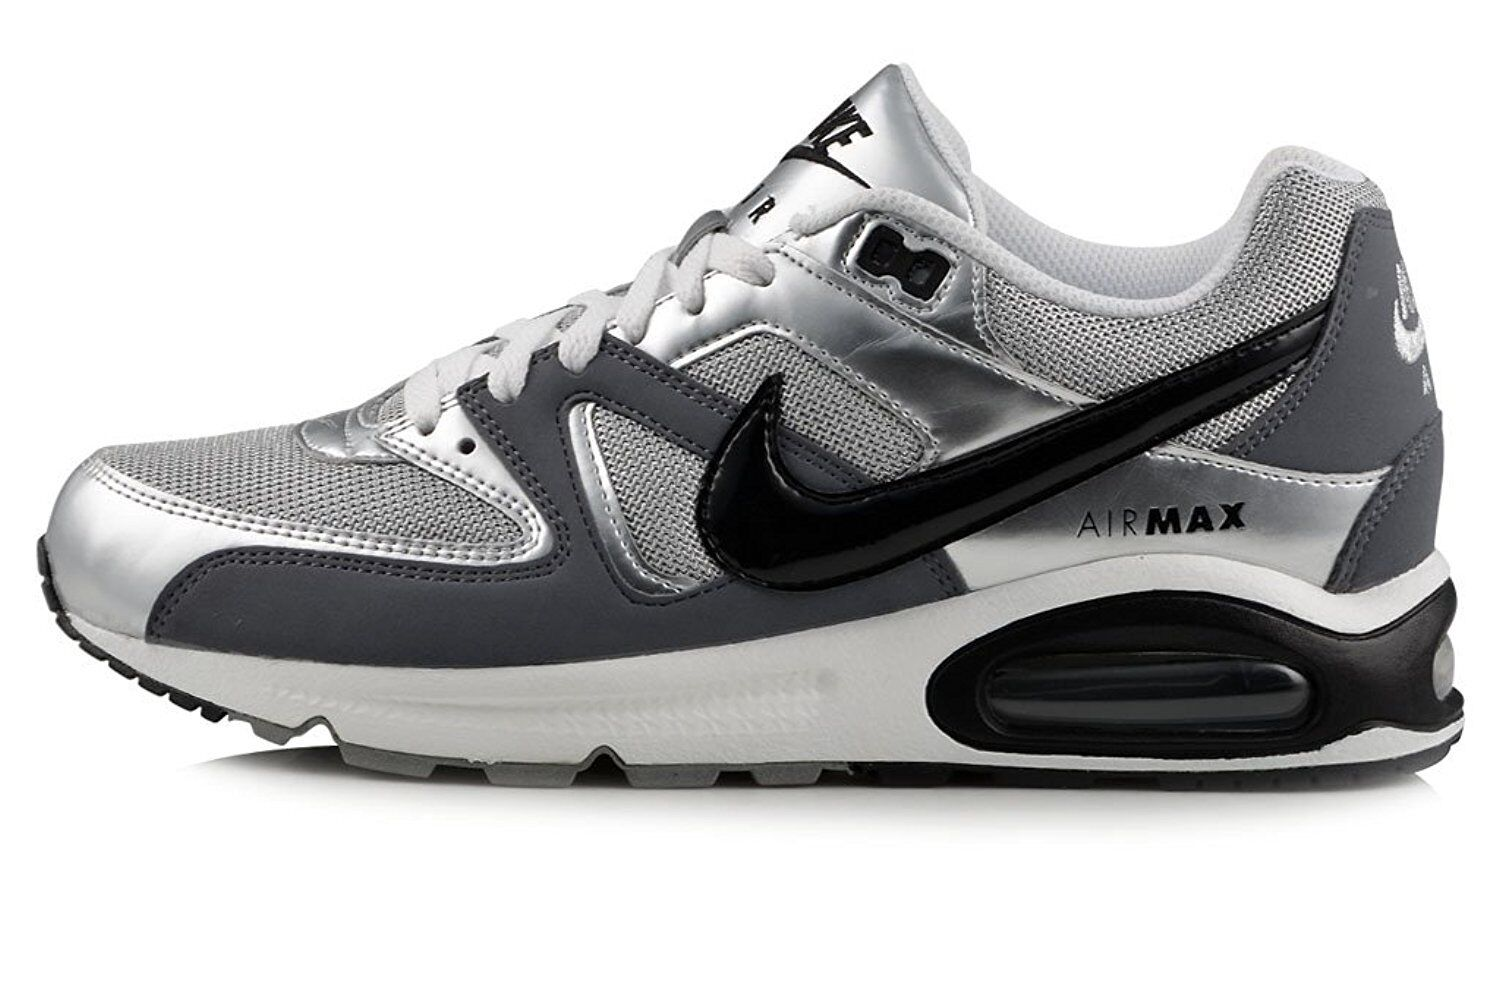 NIKE Gr:43 Air Max Command Sneaker 90 95 97 Gr:43 NIKE Premium Zapatos Jetstream Grau 7d5166